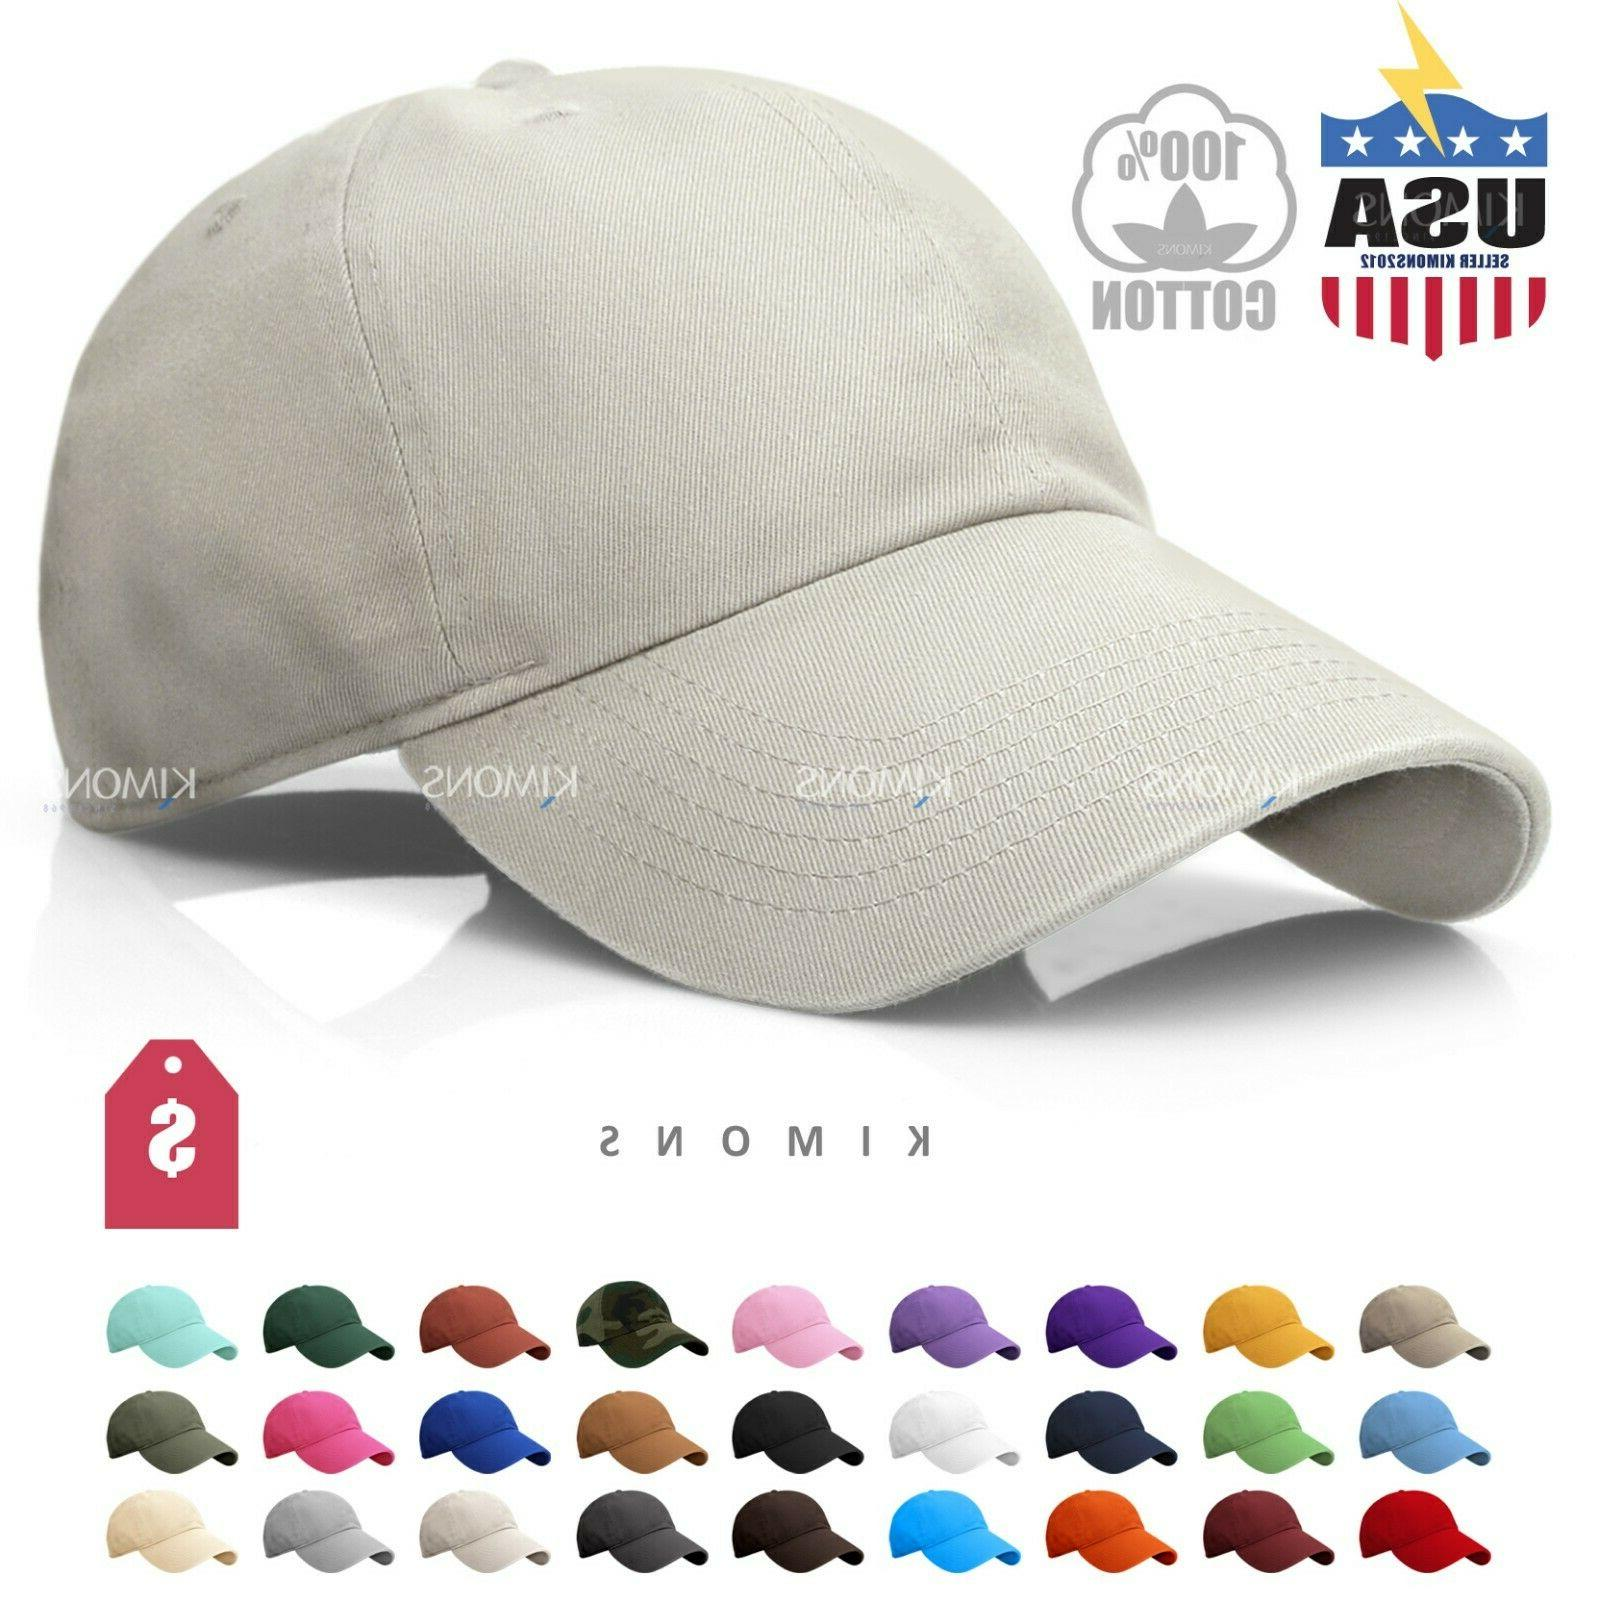 Men Womens Plain Washed Cotton Polo-Style Baseball Ball Cap Caps Hat Adjustable